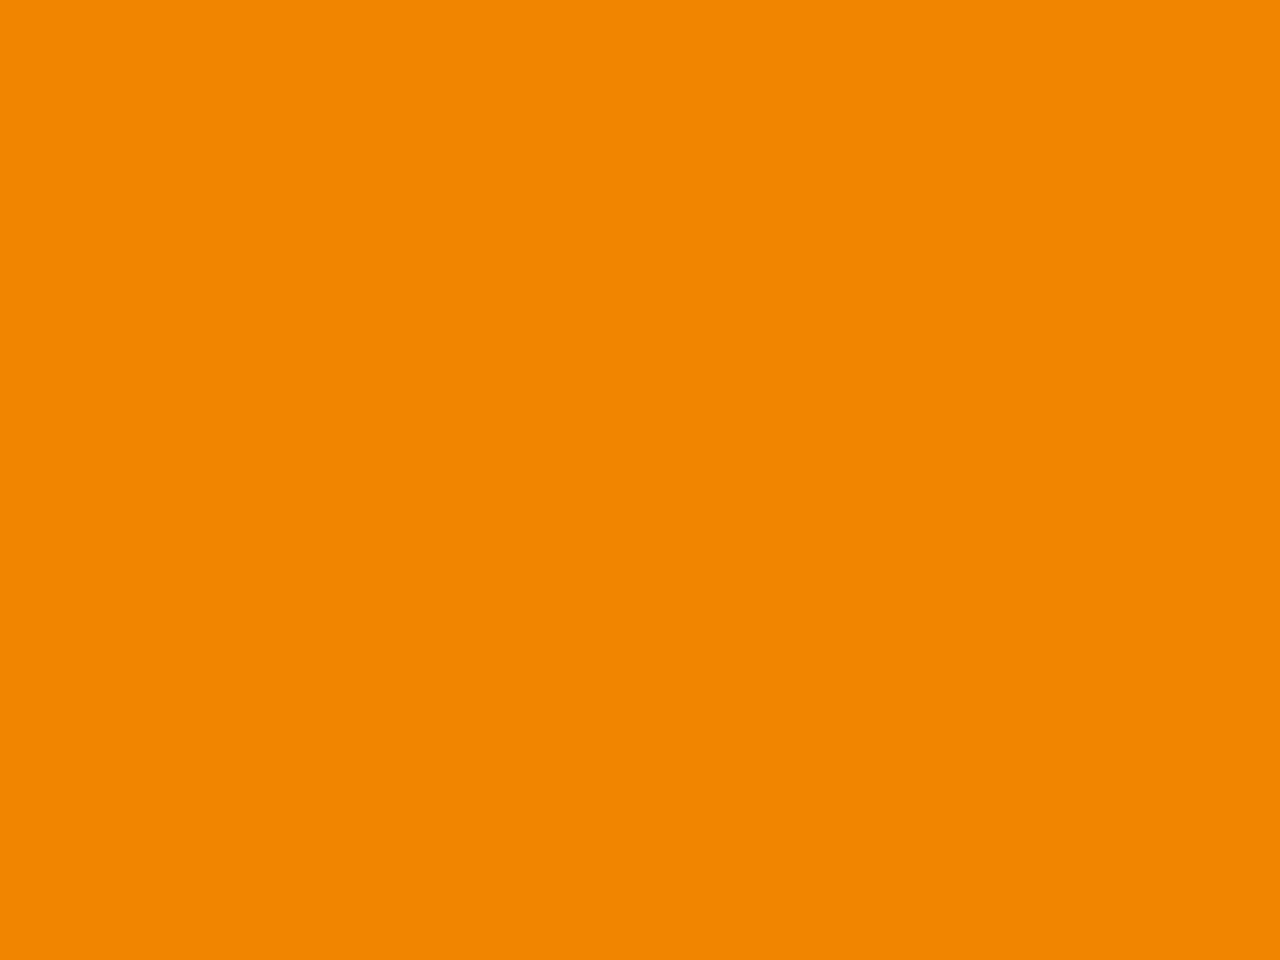 1280x960 Tangerine Solid Color Background